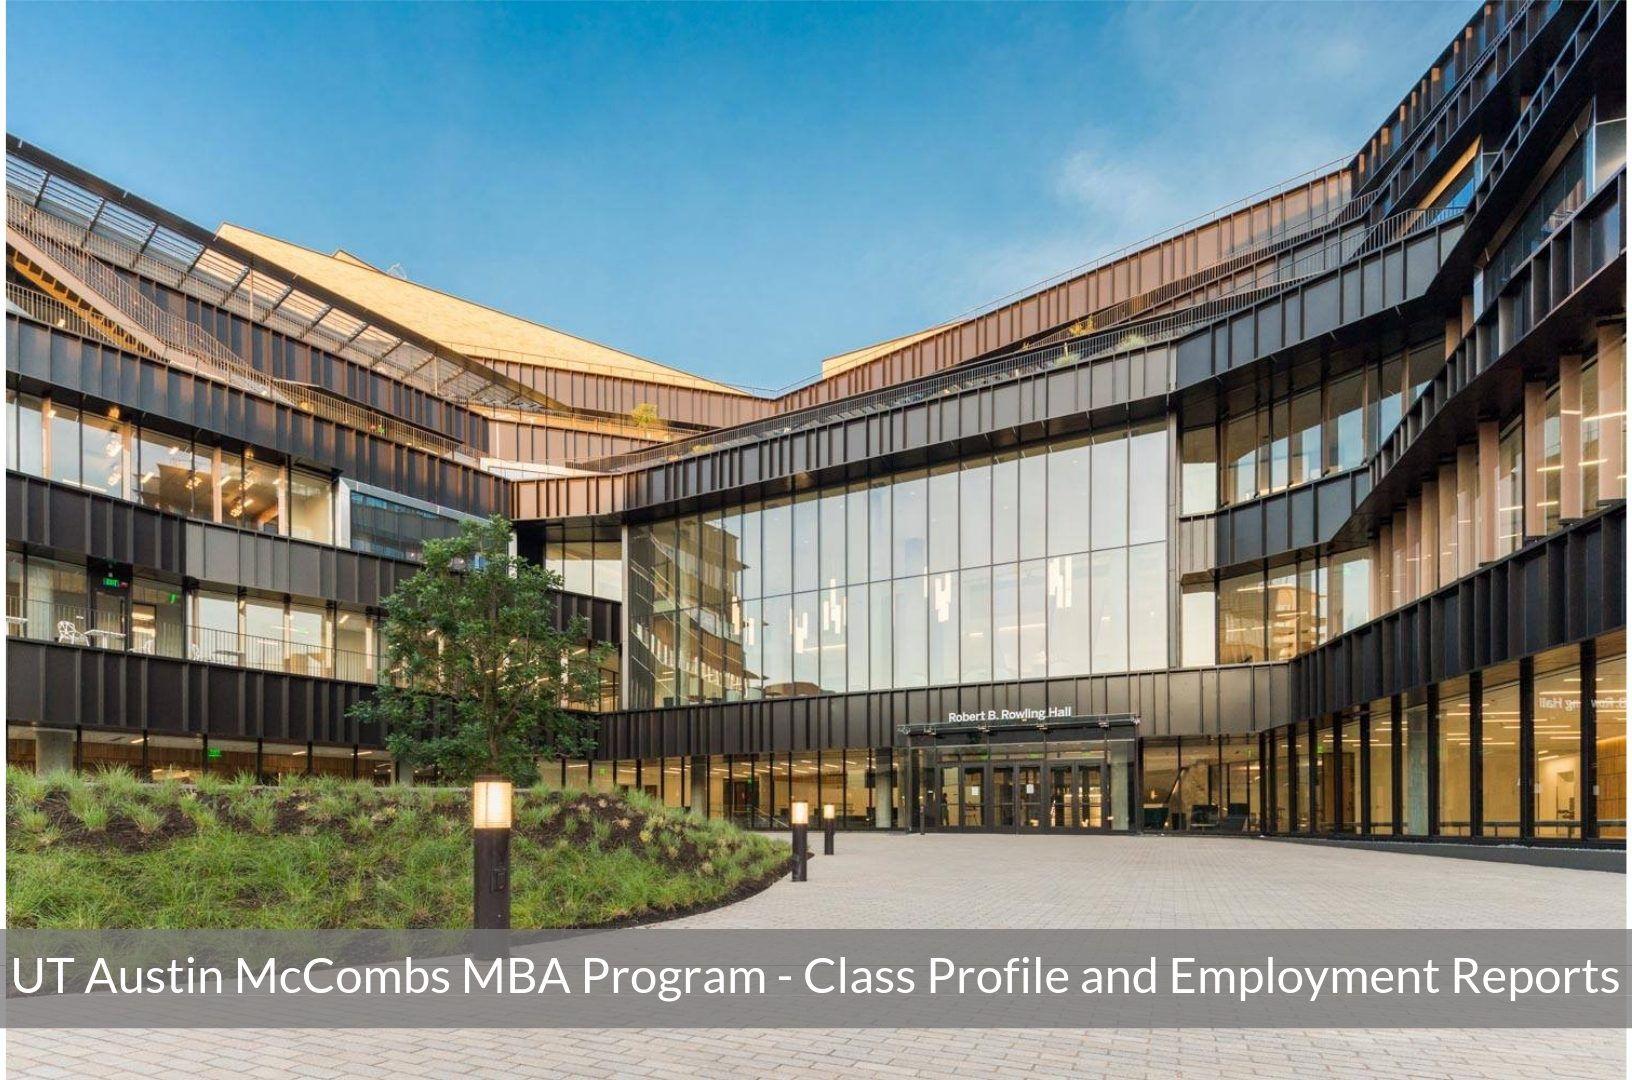 UT Austin McCombs School of Business McCombs MBA Program - Class Profile, Career and Employment Outcomes